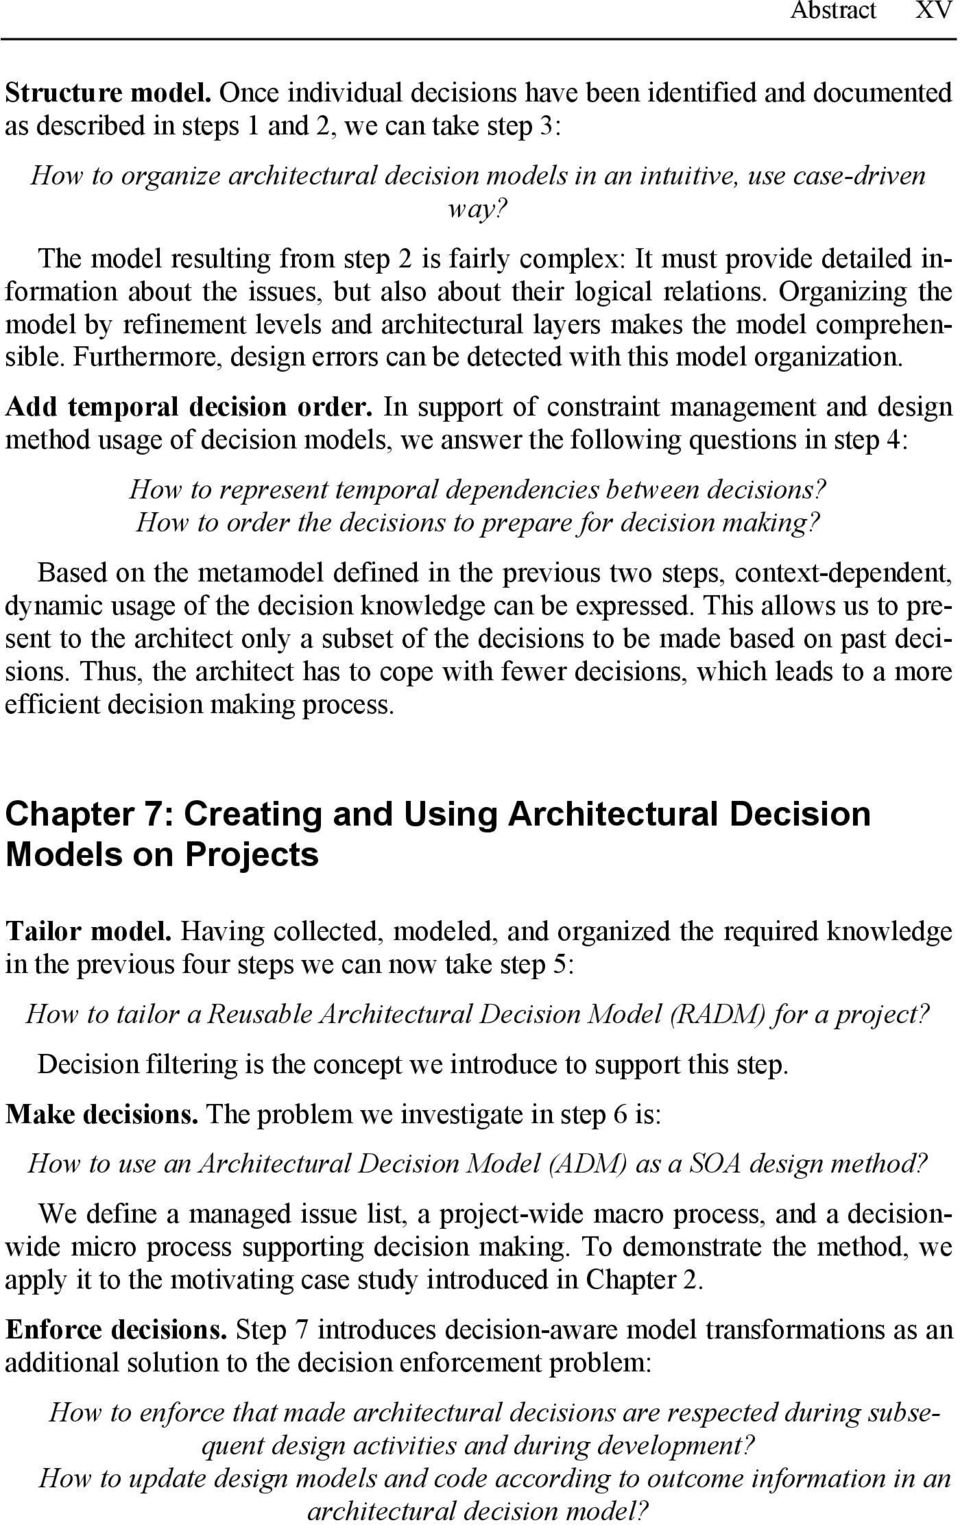 The model resulting from step 2 is fairly complex: It must provide detailed information about the issues, but also about their logical relations.